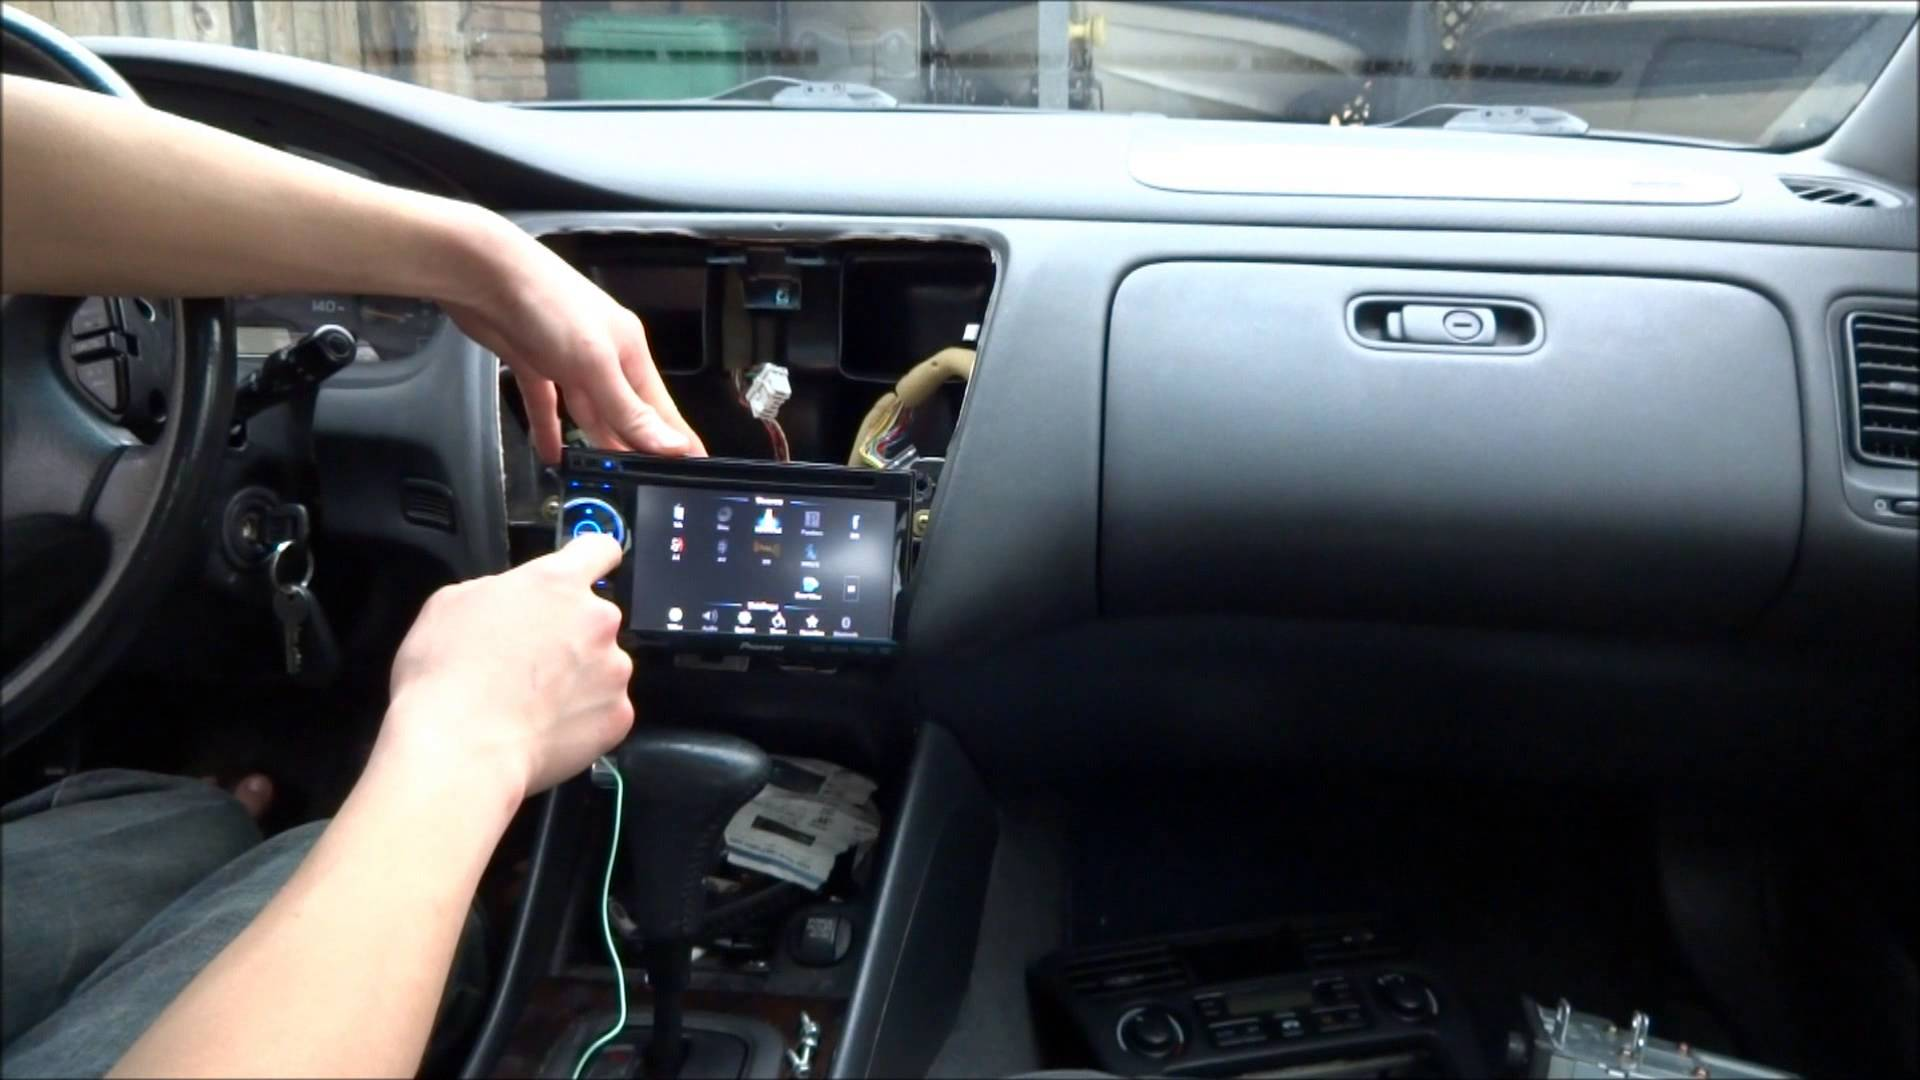 Car Stereo Installation | DECK-Install - Lockdown Security